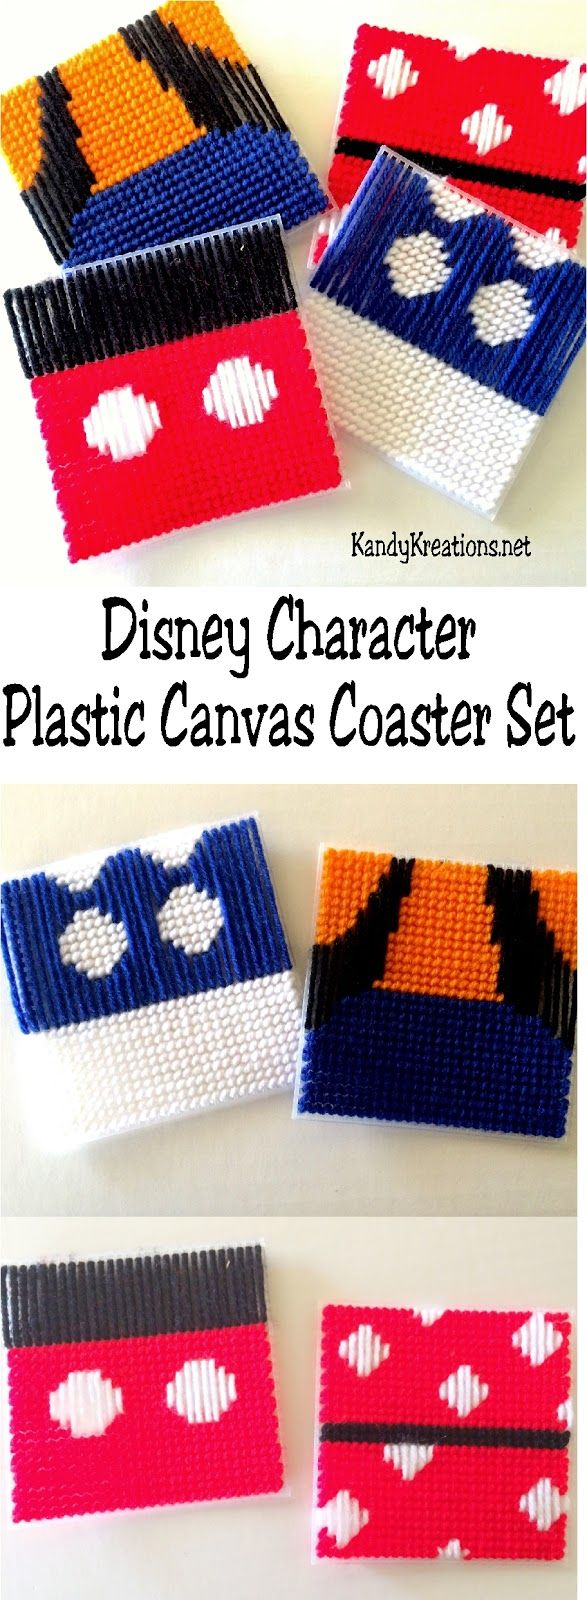 Create fun coaster sets of your favorite Disney characters with these free plastic canvas patterns. You can make Mickey, Minnie, Donald, and Goofy a part of your home, Disney party, or as gifts for the Disney fan in your life.